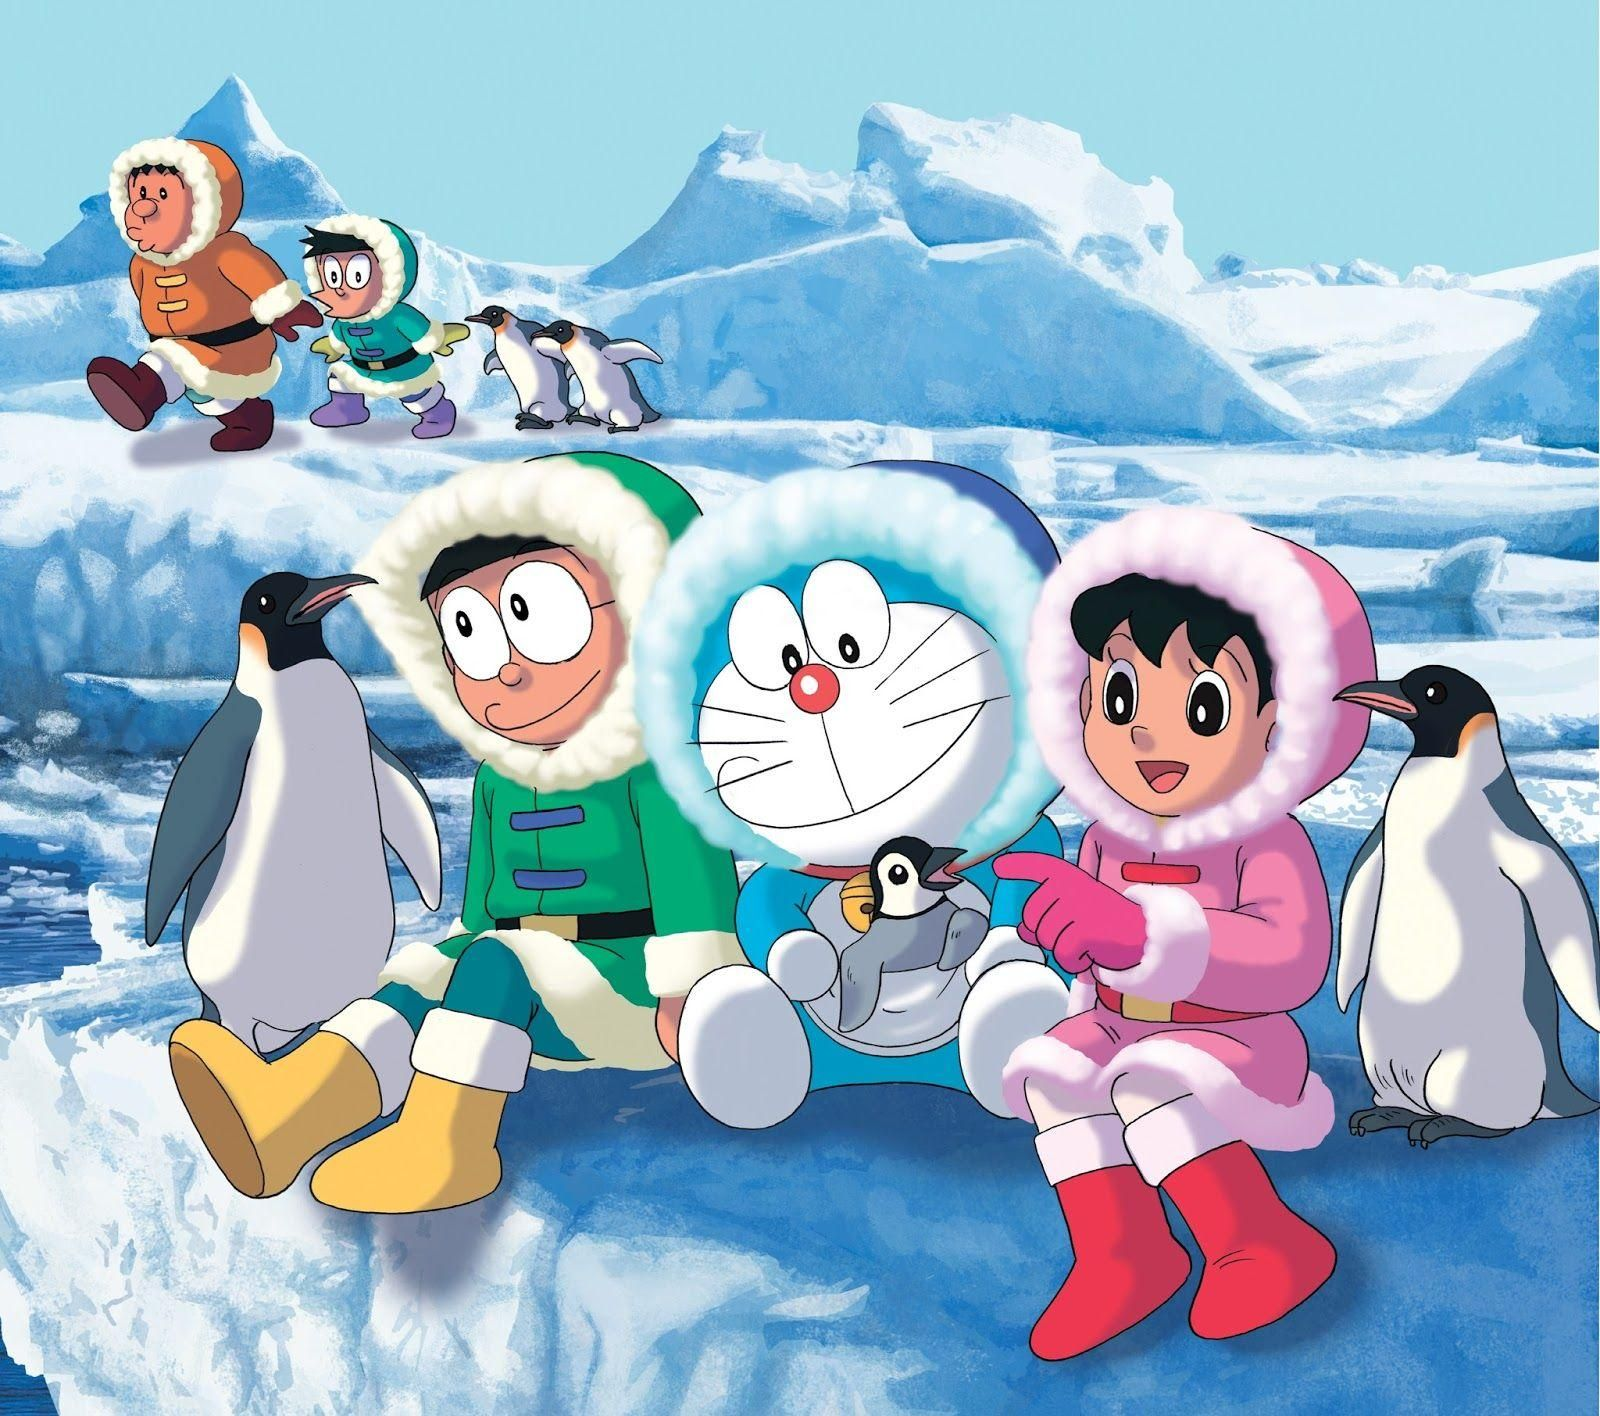 Doraemon Wallpaper Terbaru 3d Di 2020